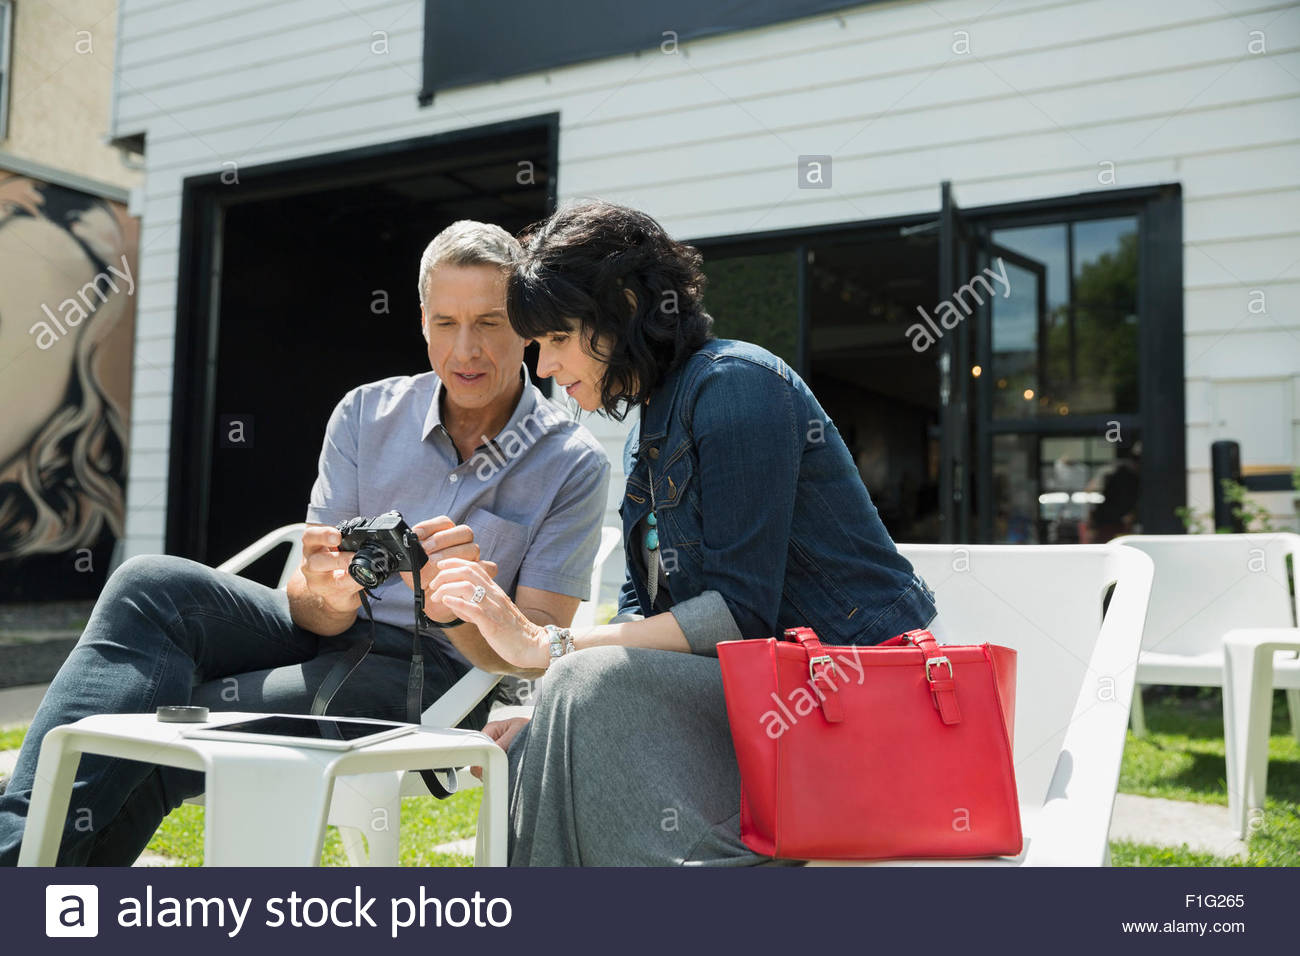 Couple looking at digital camera on sunny patio - Stock Image